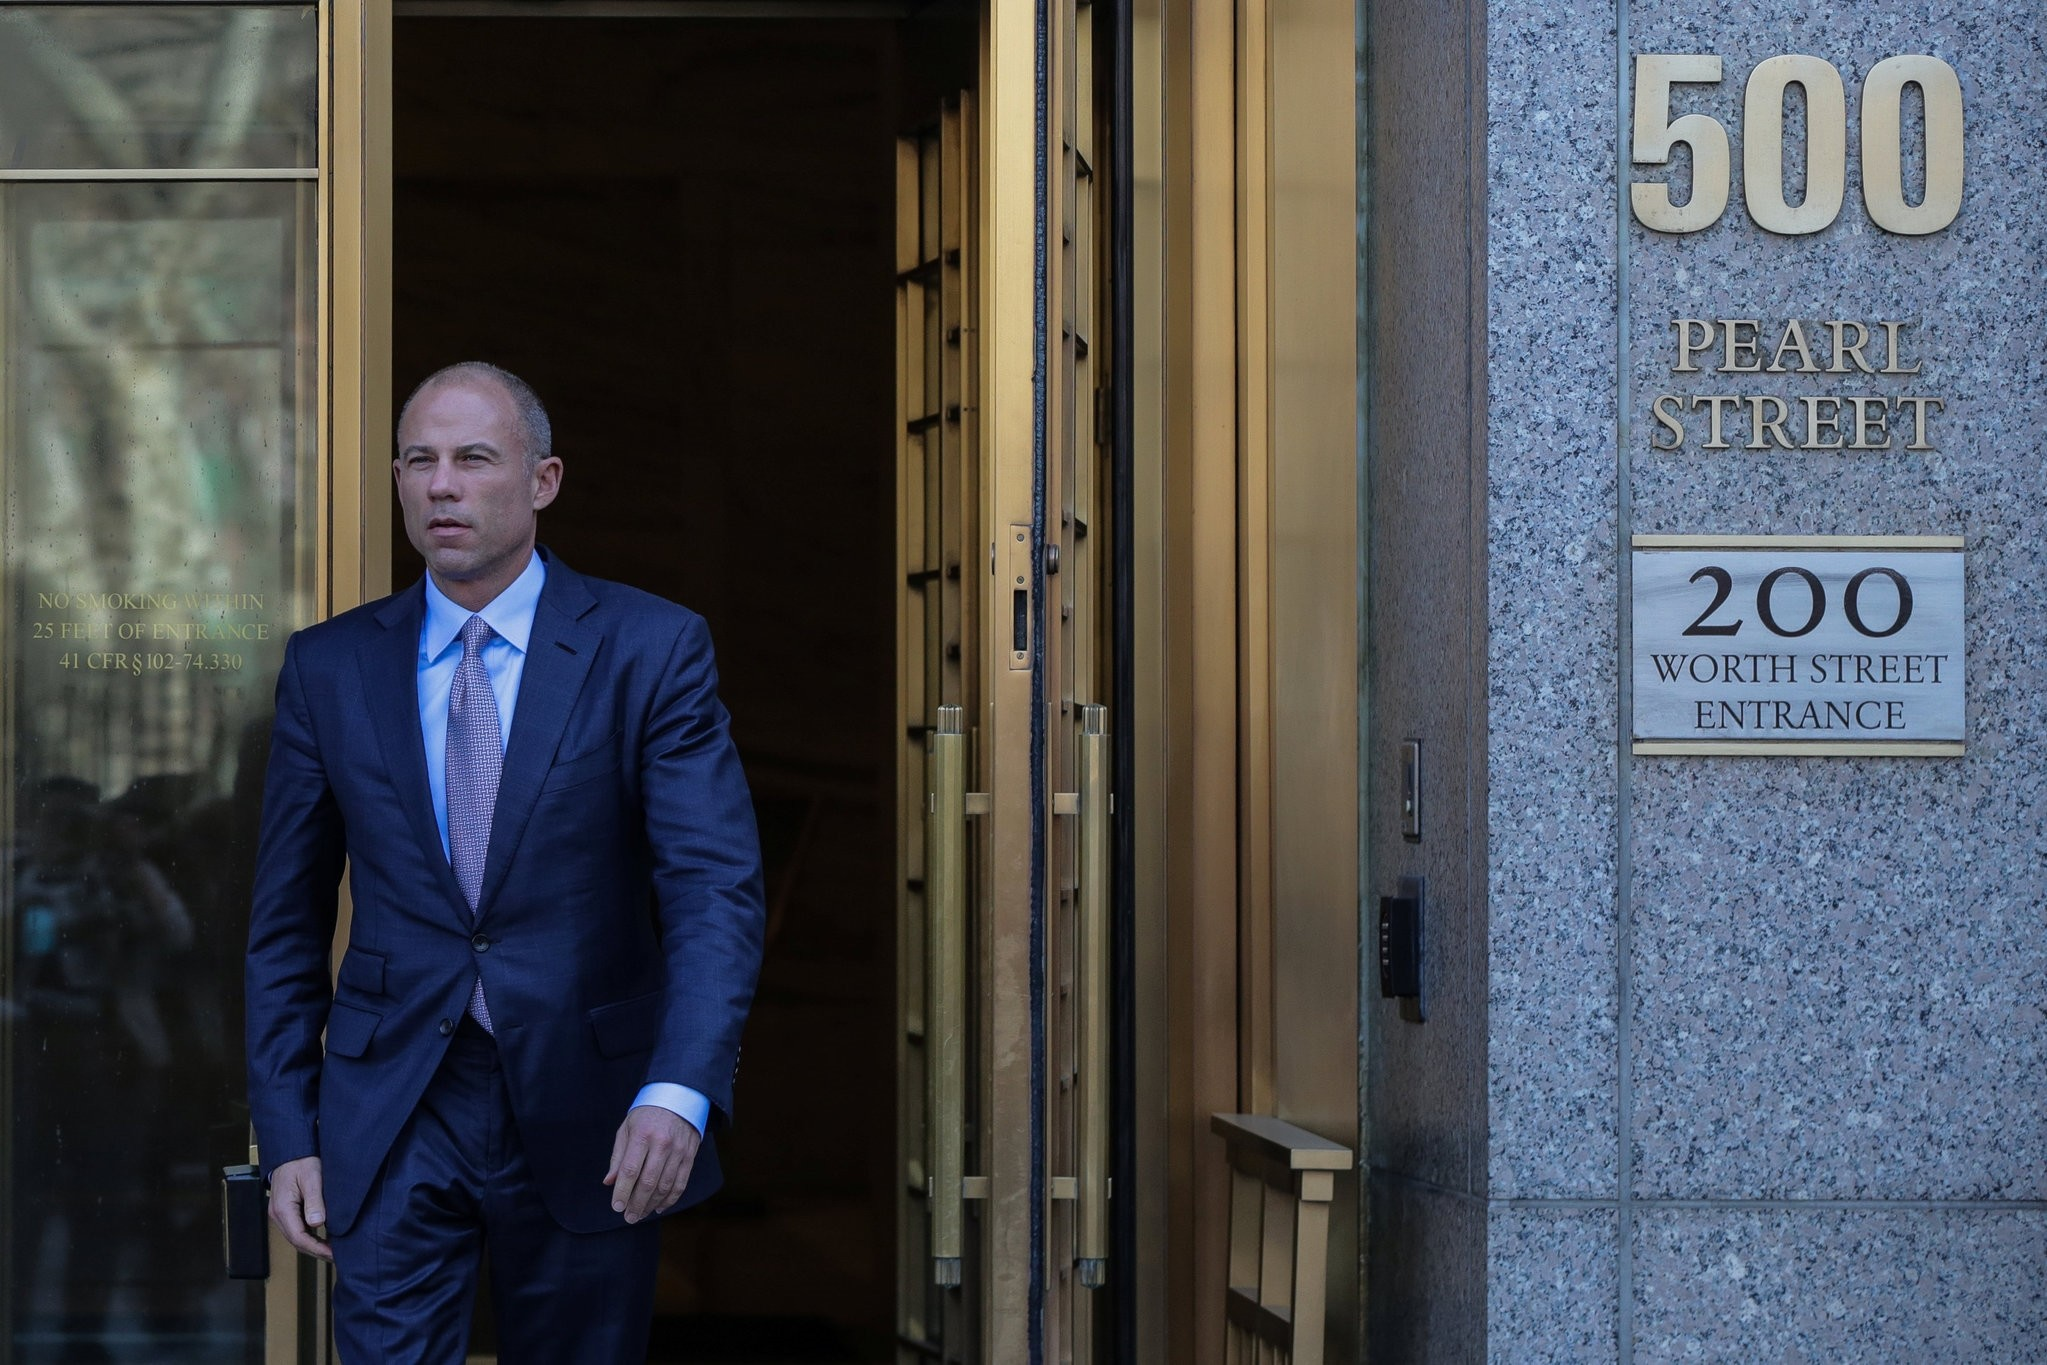 Michael Avenatti, attorney for Stormy Daniels, is pictured outside the Manhattan Federal Court in New York City, New York, U.S., April 13, 2018. (REUTERS Photo)